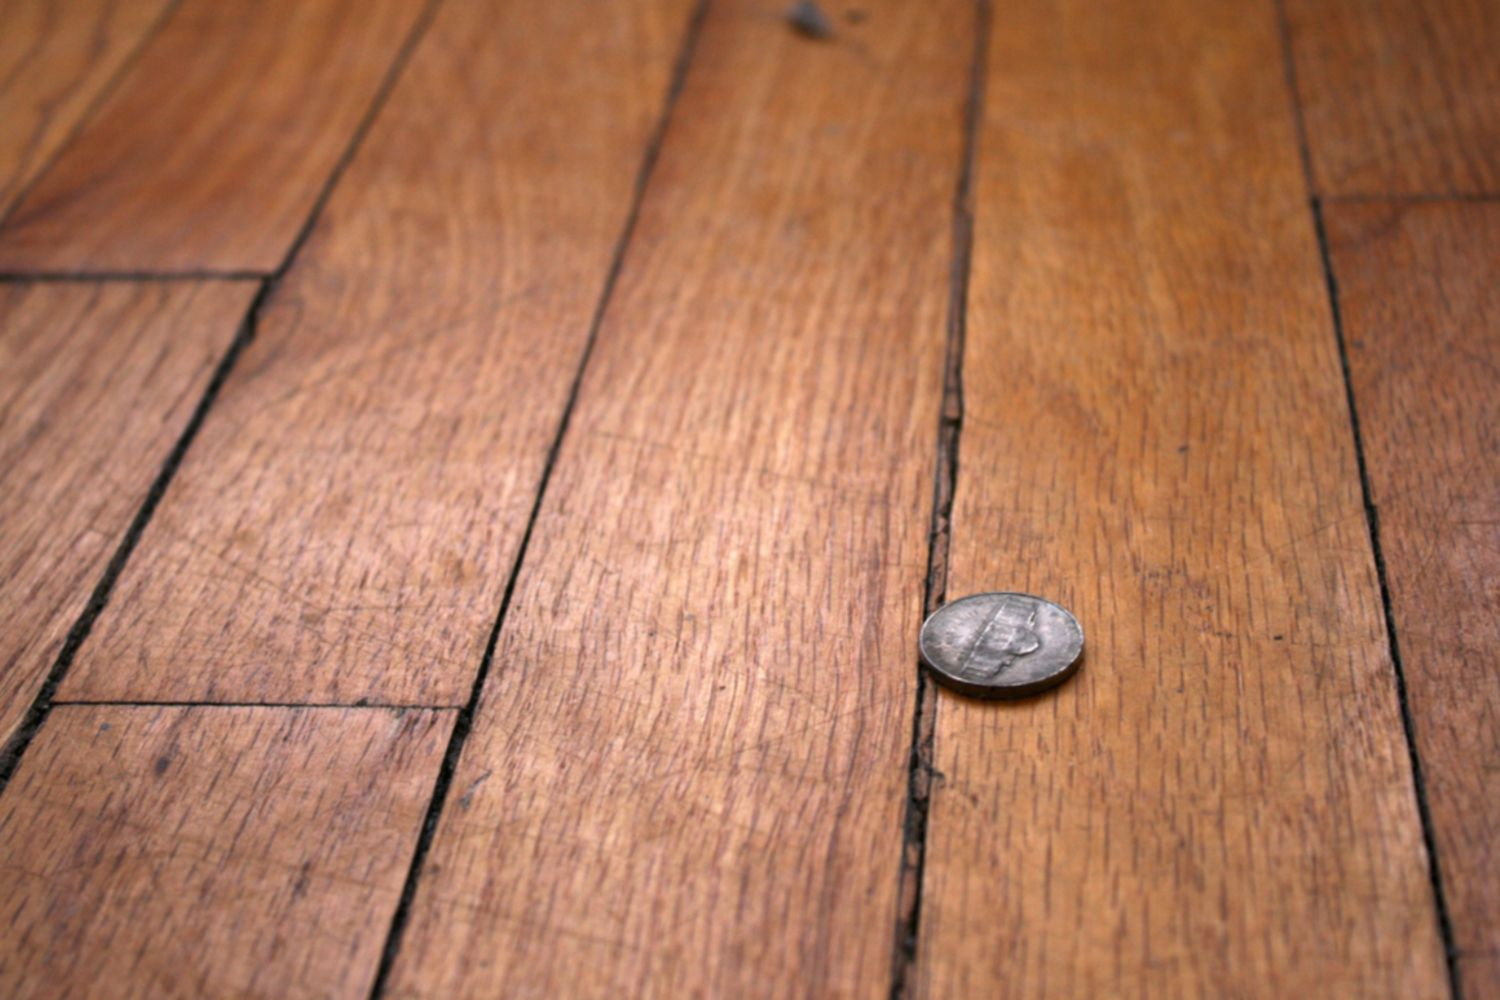 How To Repair Gaps Between Floorboards